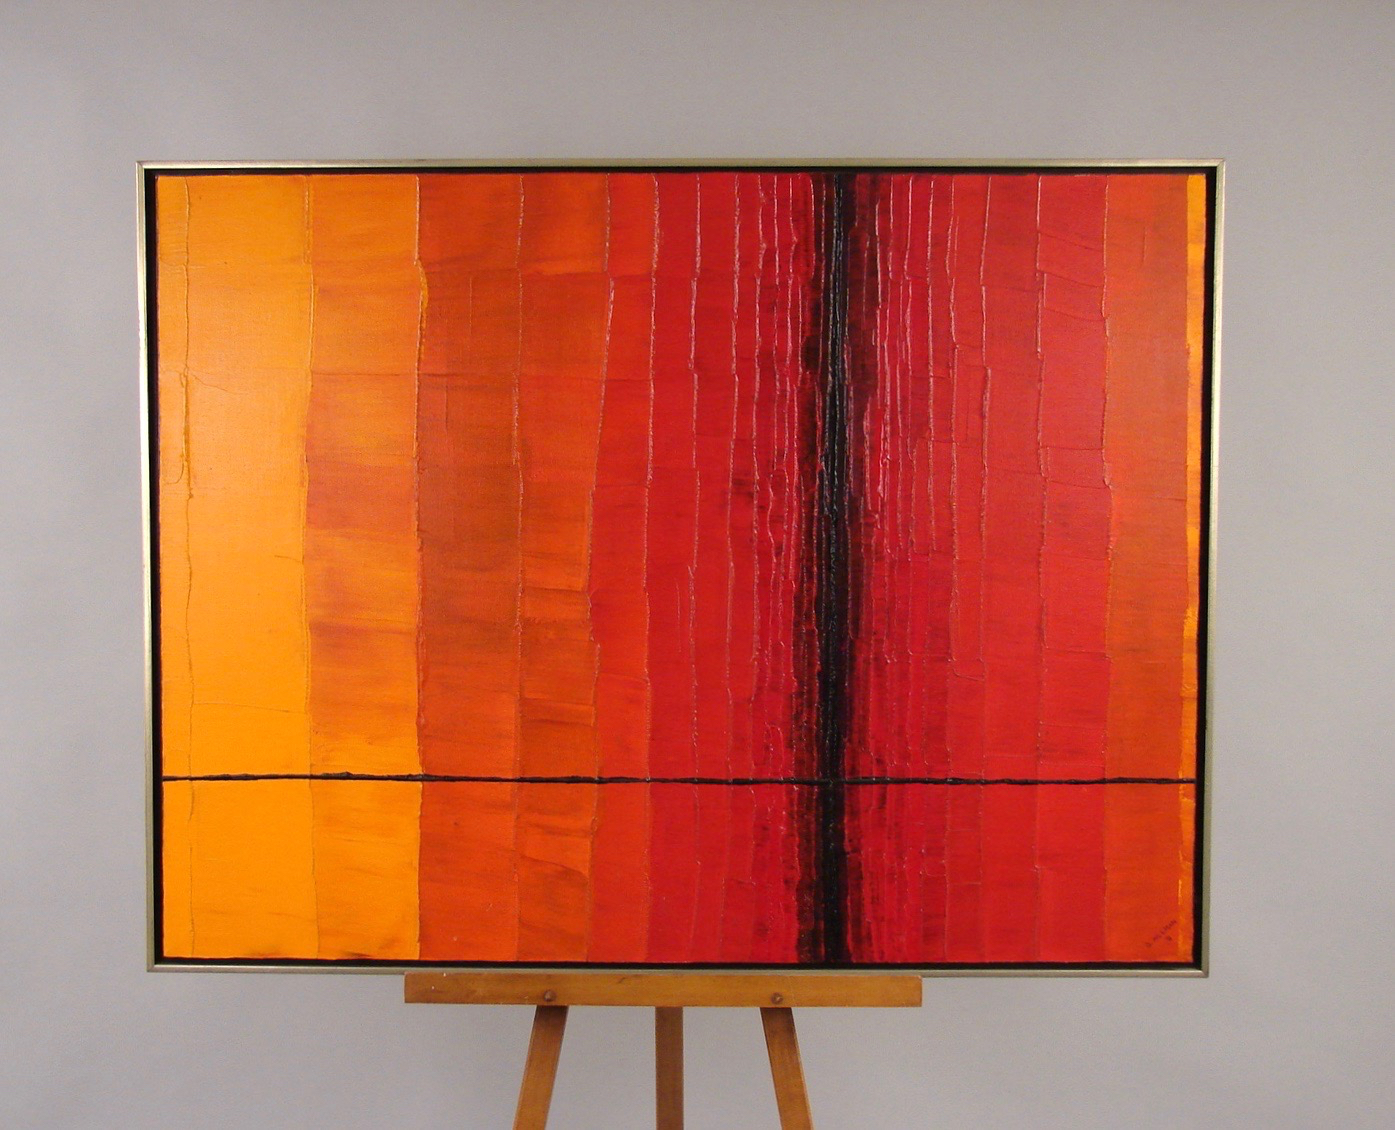 Mid-Century Oil on Canvas in Reds, Oranges and Black | DANIEL STEIN Antiques San Francisco CA